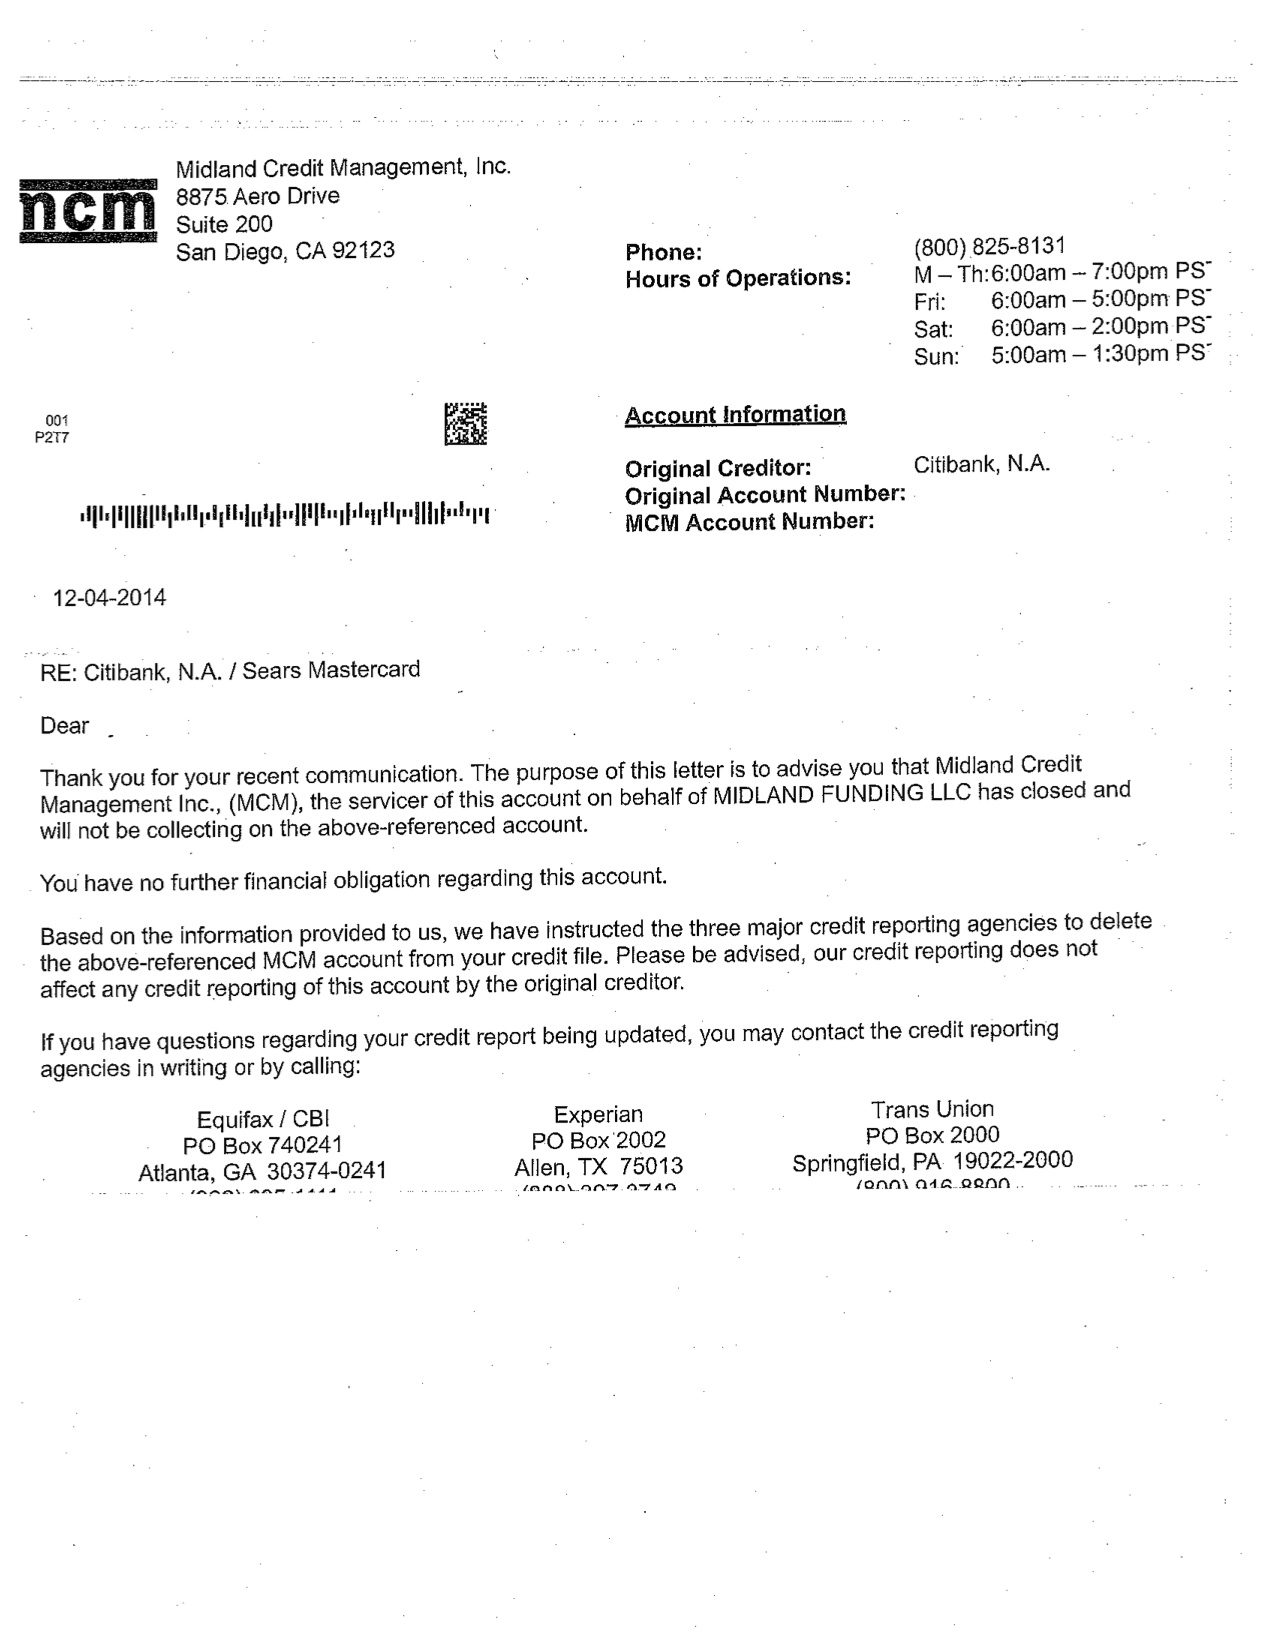 debt validation letter illustrating success